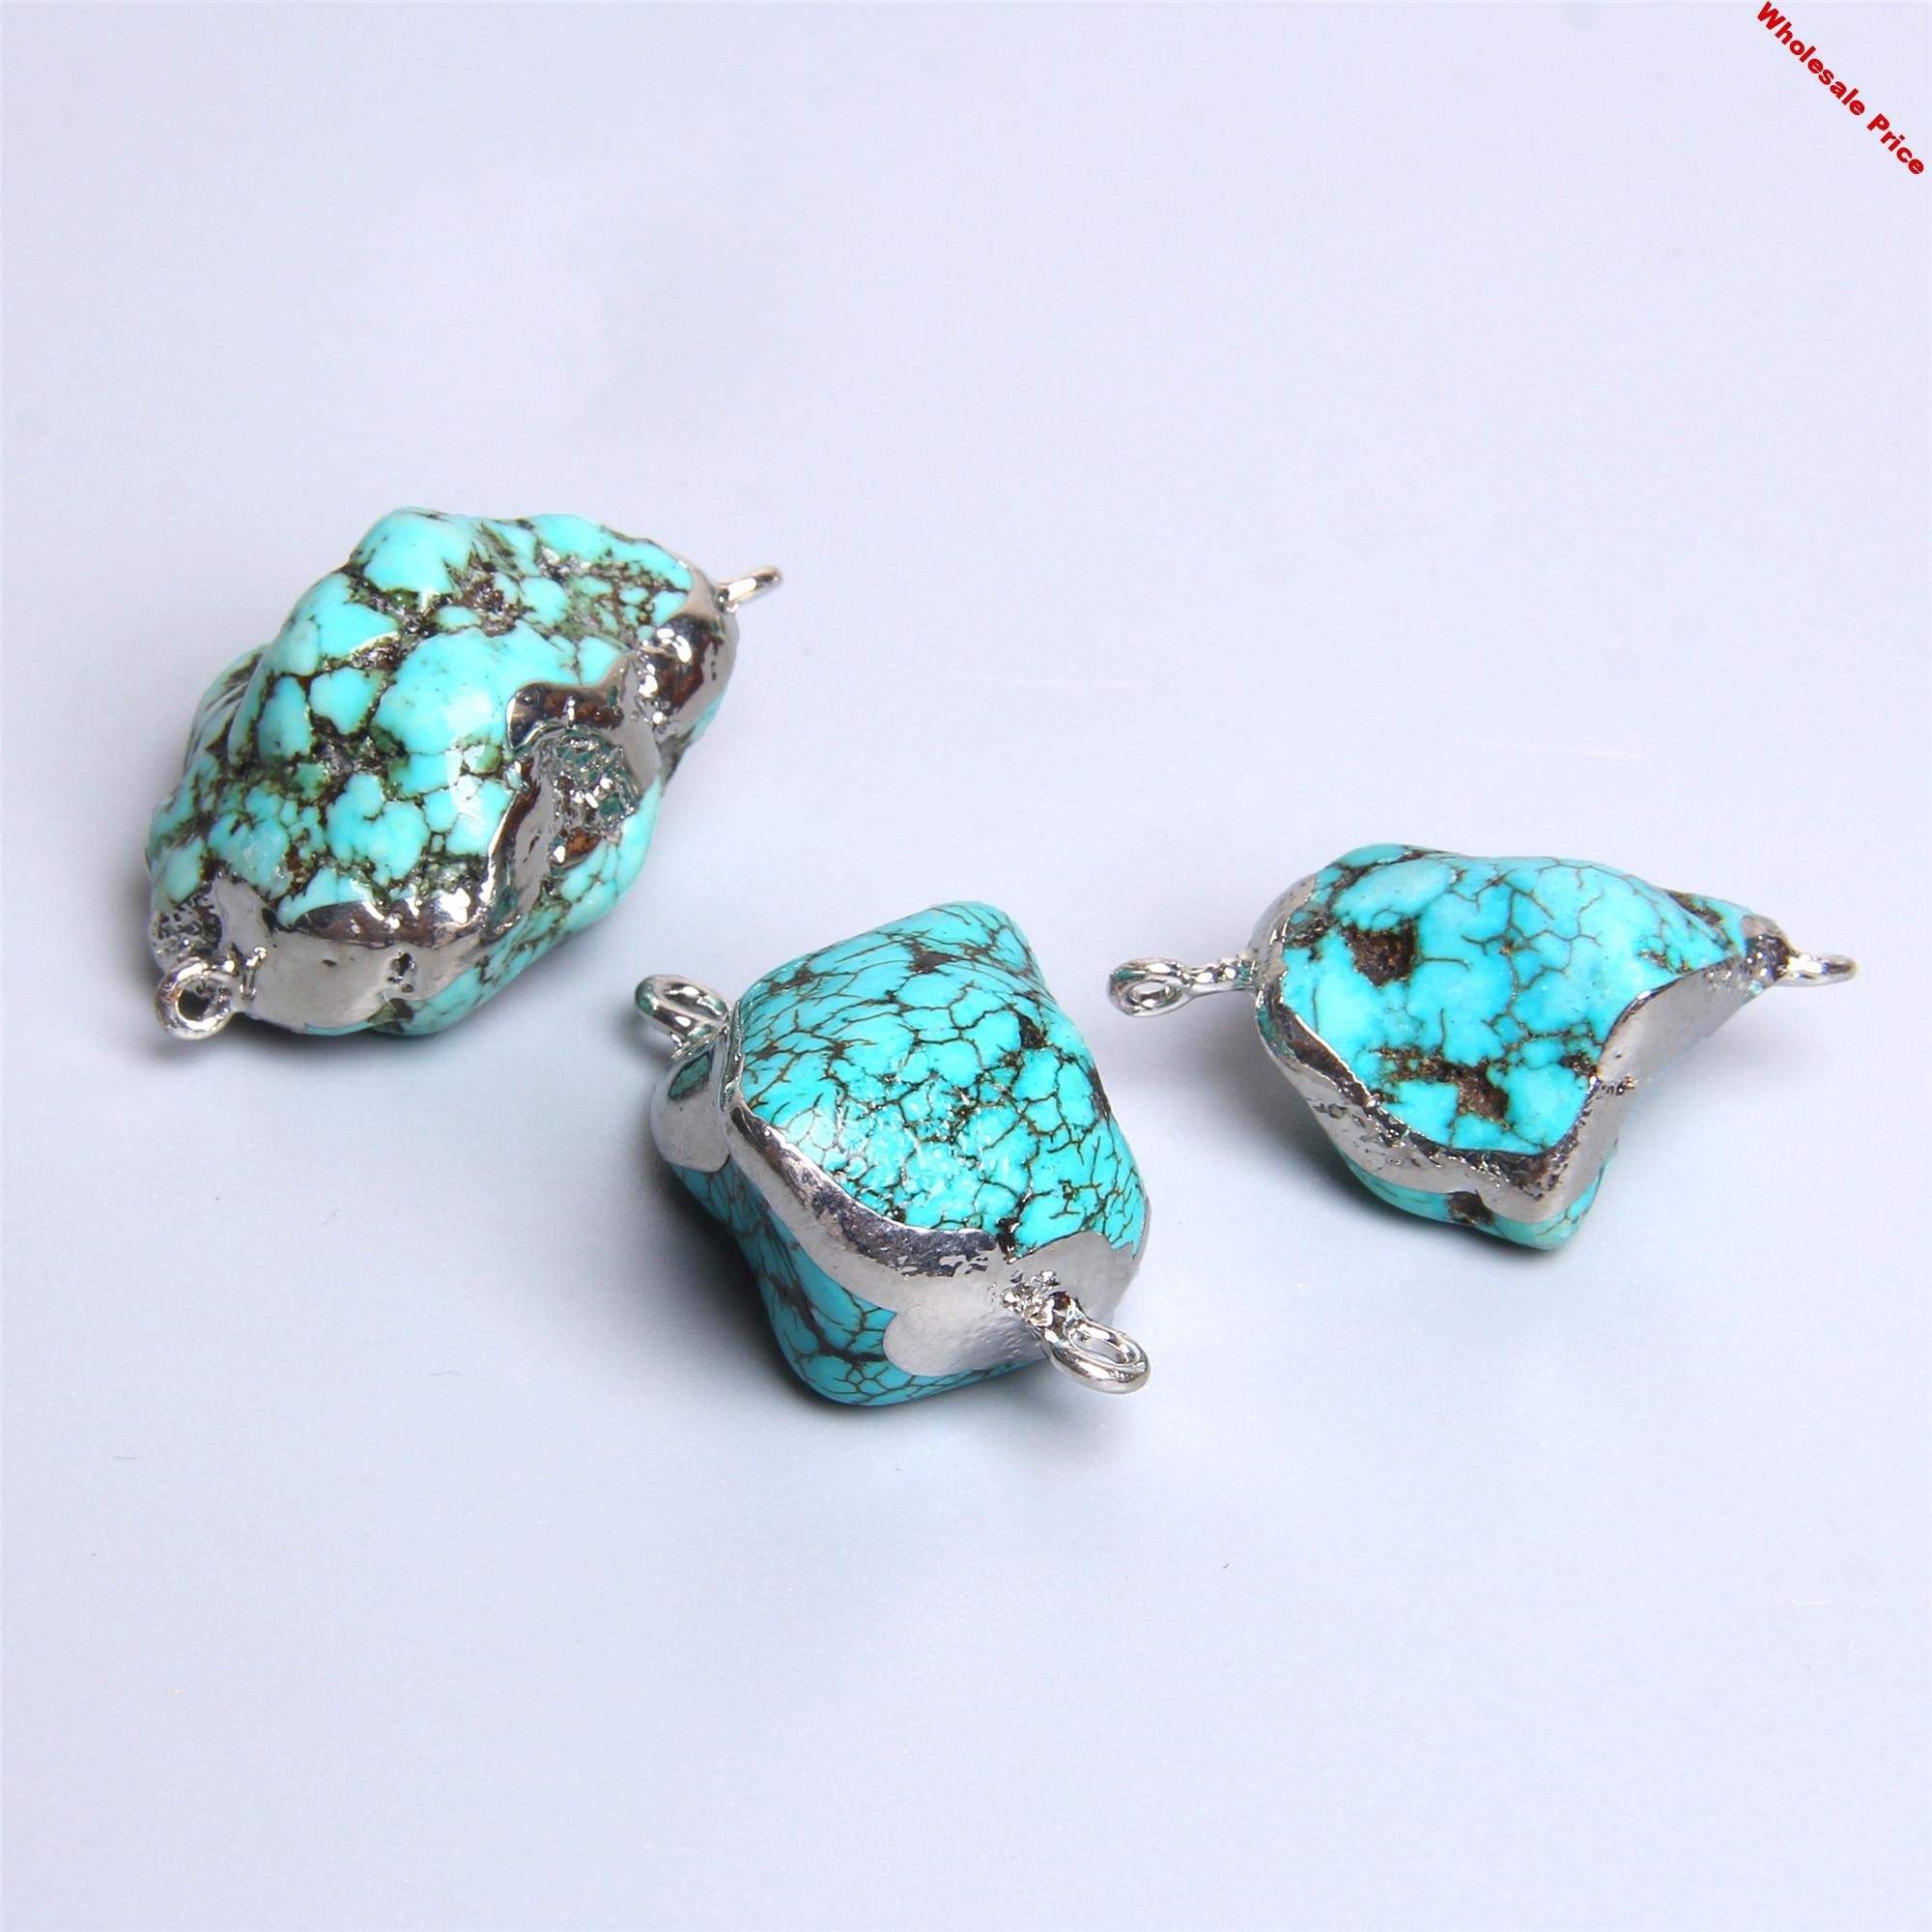 10pcs Natural turquoises connectors pendants irregular natural stone agat druzy pendant blue turquoises for jewelry making gift